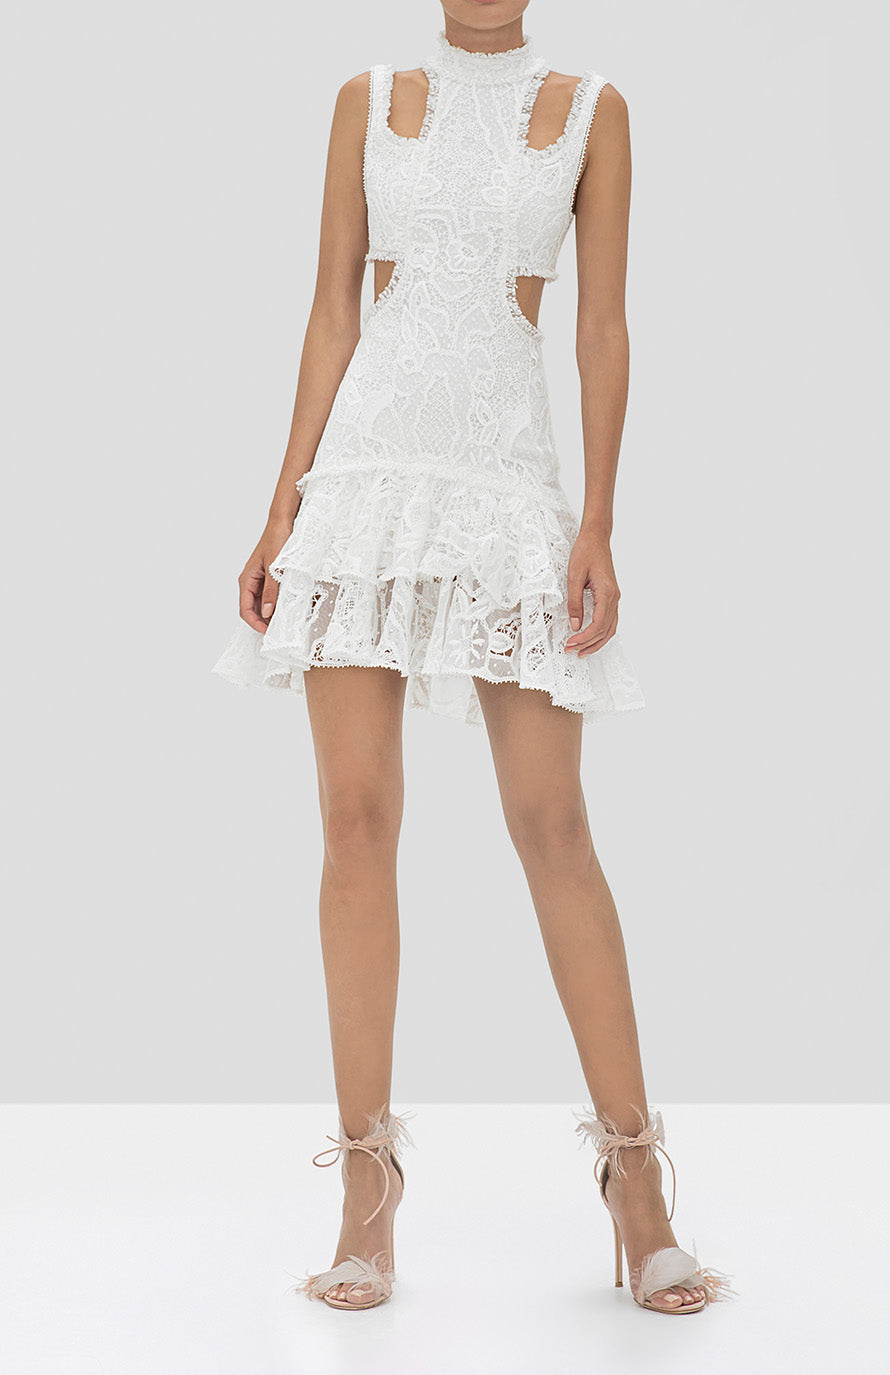 Alexis Kirsi Dress in White from the Holiday 2019 Ready To Wear Collection - Rear View